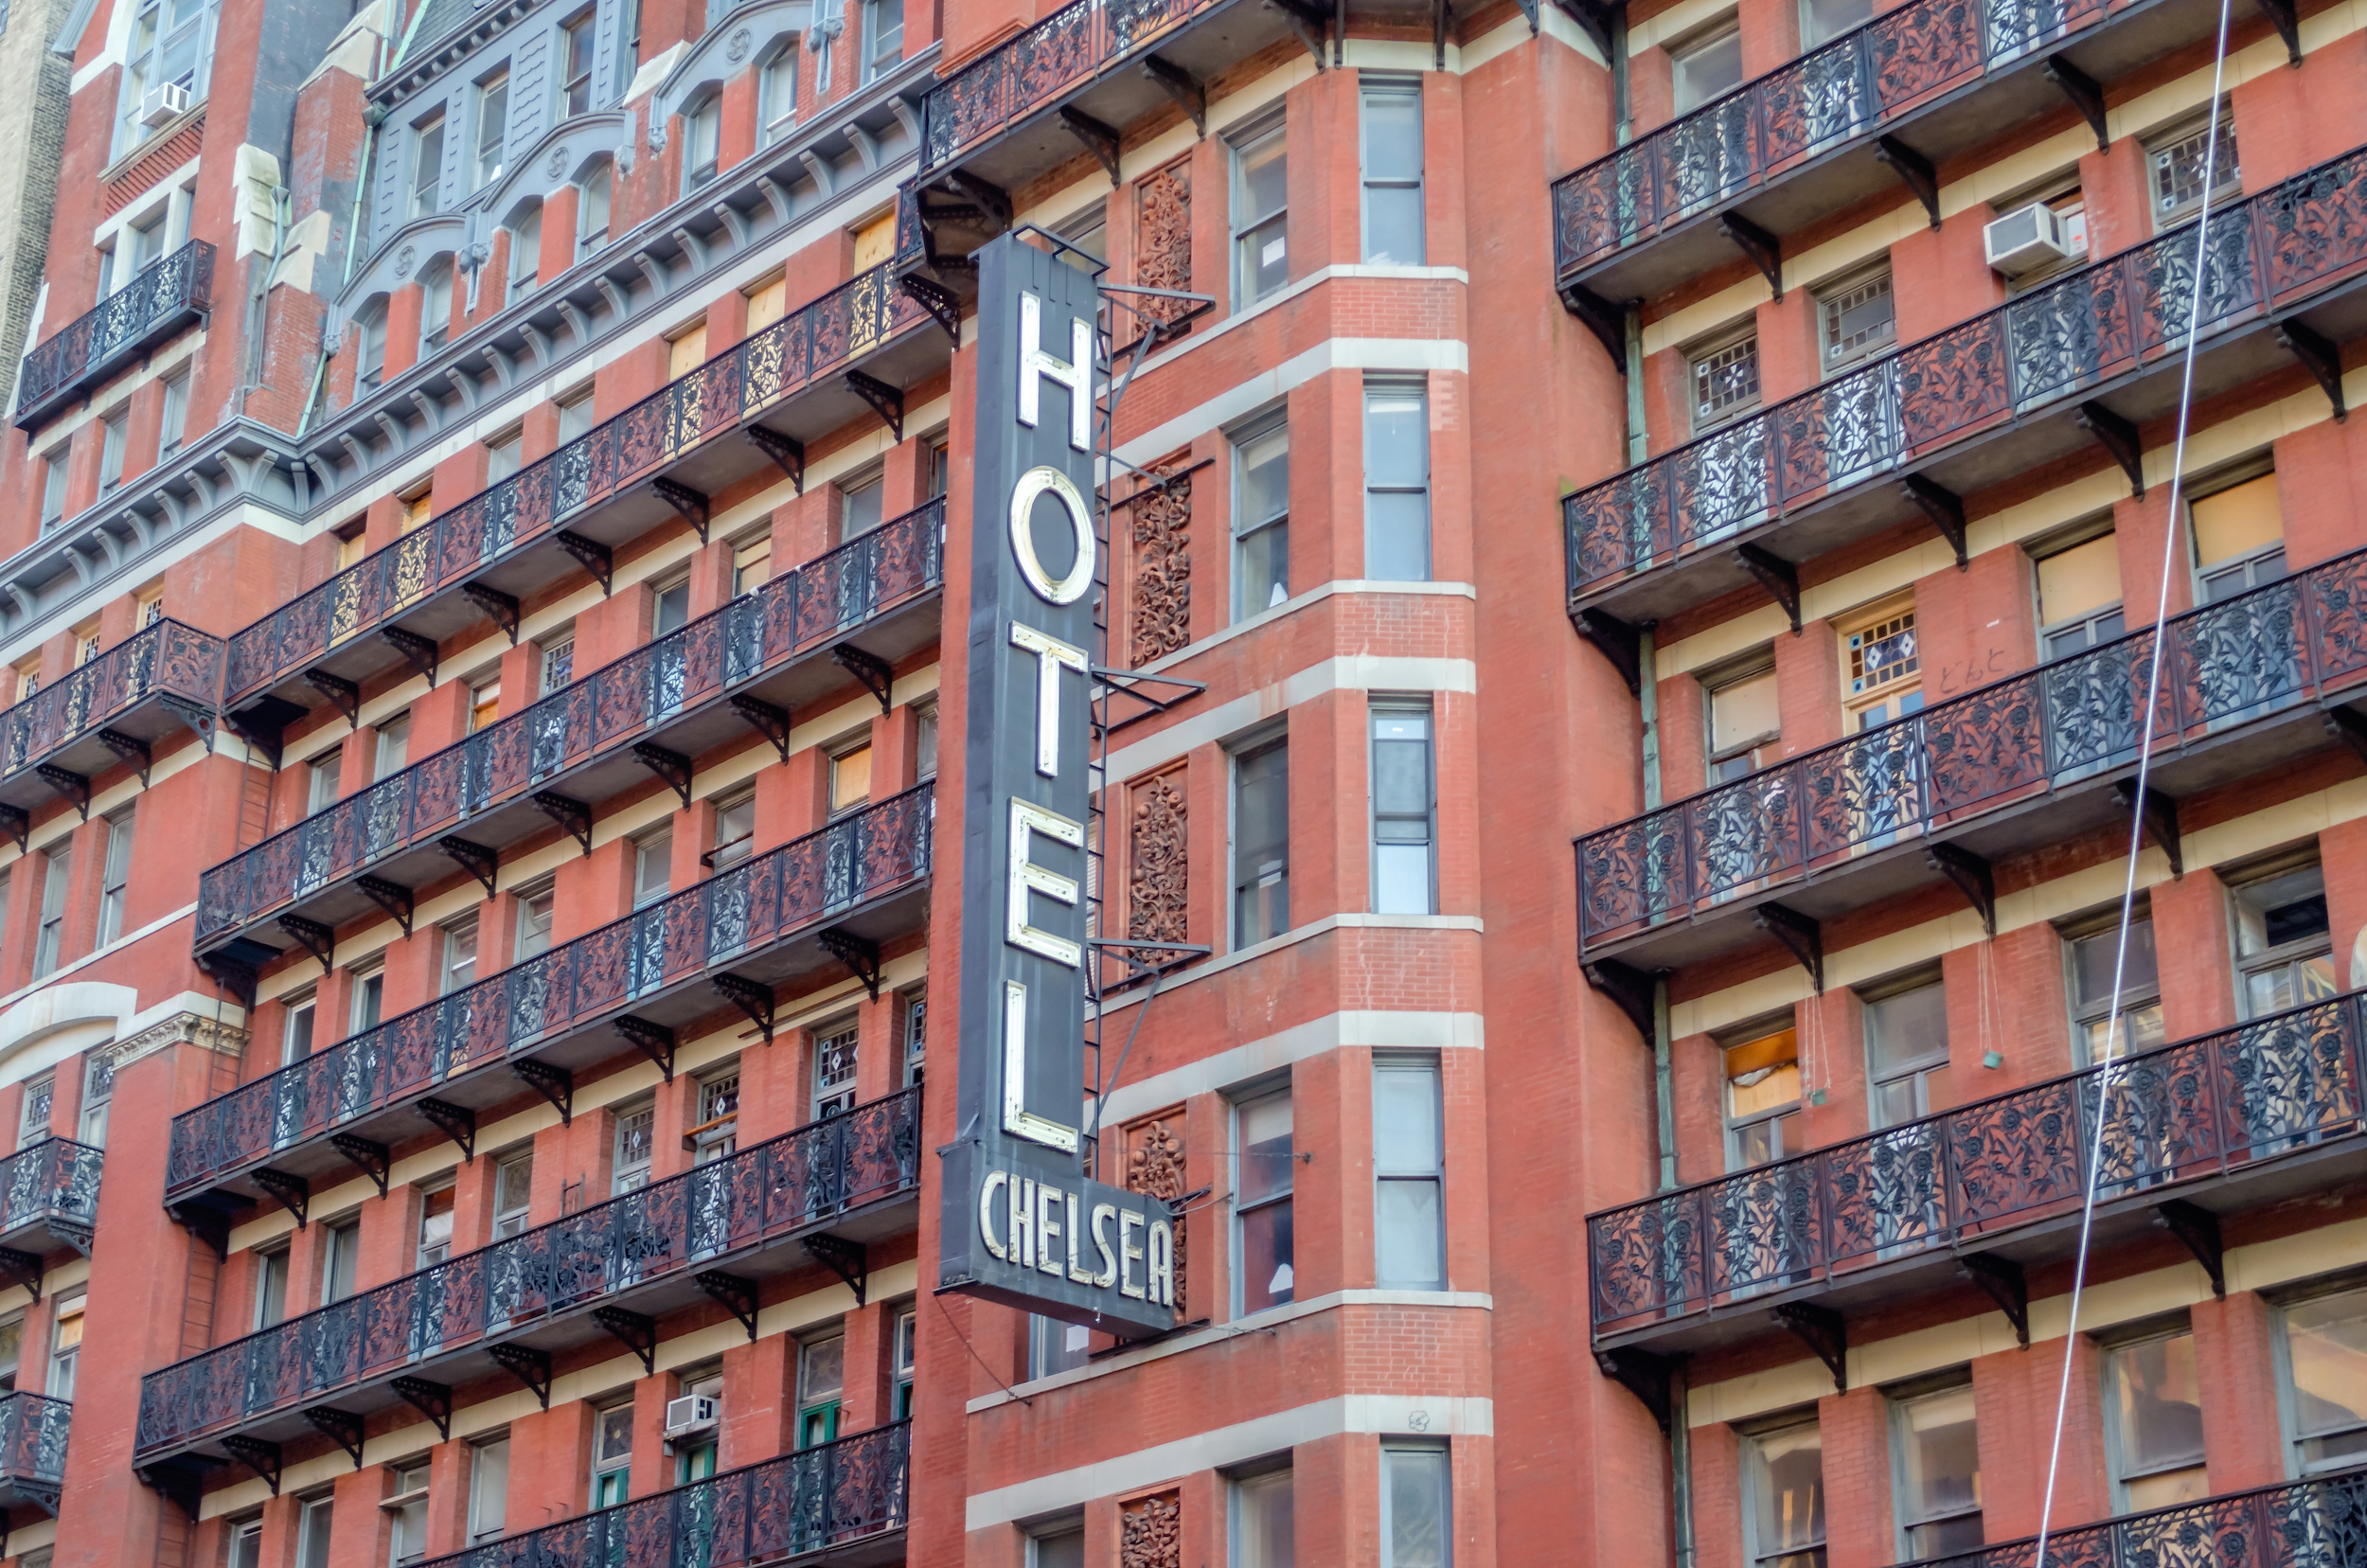 The exterior of Hotel Chelsea in New York City. The facade is red brick and there is a large sign that reads: Hotel Chelsea. There are black balconies in front of multiple exterior windows.